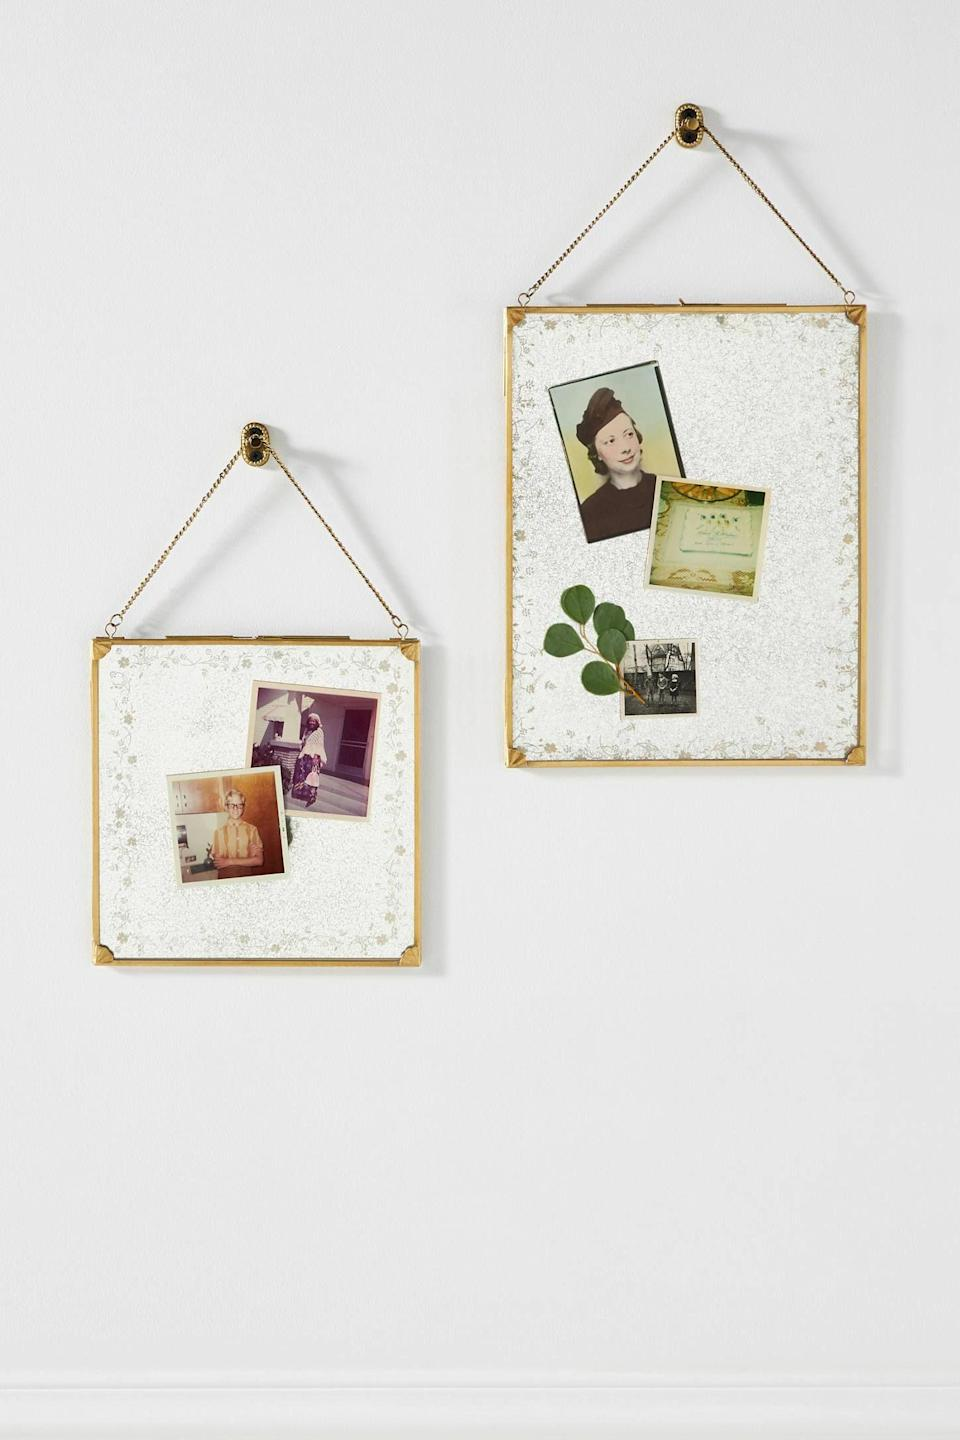 """<p><strong>Anthropologie</strong></p><p>anthropologie.com</p><p><strong>$60.00</strong></p><p><a href=""""https://go.redirectingat.com?id=74968X1596630&url=https%3A%2F%2Fwww.anthropologie.com%2Fshop%2Fmatilda-frame&sref=https%3A%2F%2Fwww.oprahdaily.com%2Flife%2Fg31400004%2Funique-mothers-day-gifts%2F"""" rel=""""nofollow noopener"""" target=""""_blank"""" data-ylk=""""slk:SHOP NOW"""" class=""""link rapid-noclick-resp"""">SHOP NOW</a></p><p>For a meaningful gift, fill these artful glass frames with special mementos—photos, letters, kids' drawings... anything that makes mom smile. </p>"""